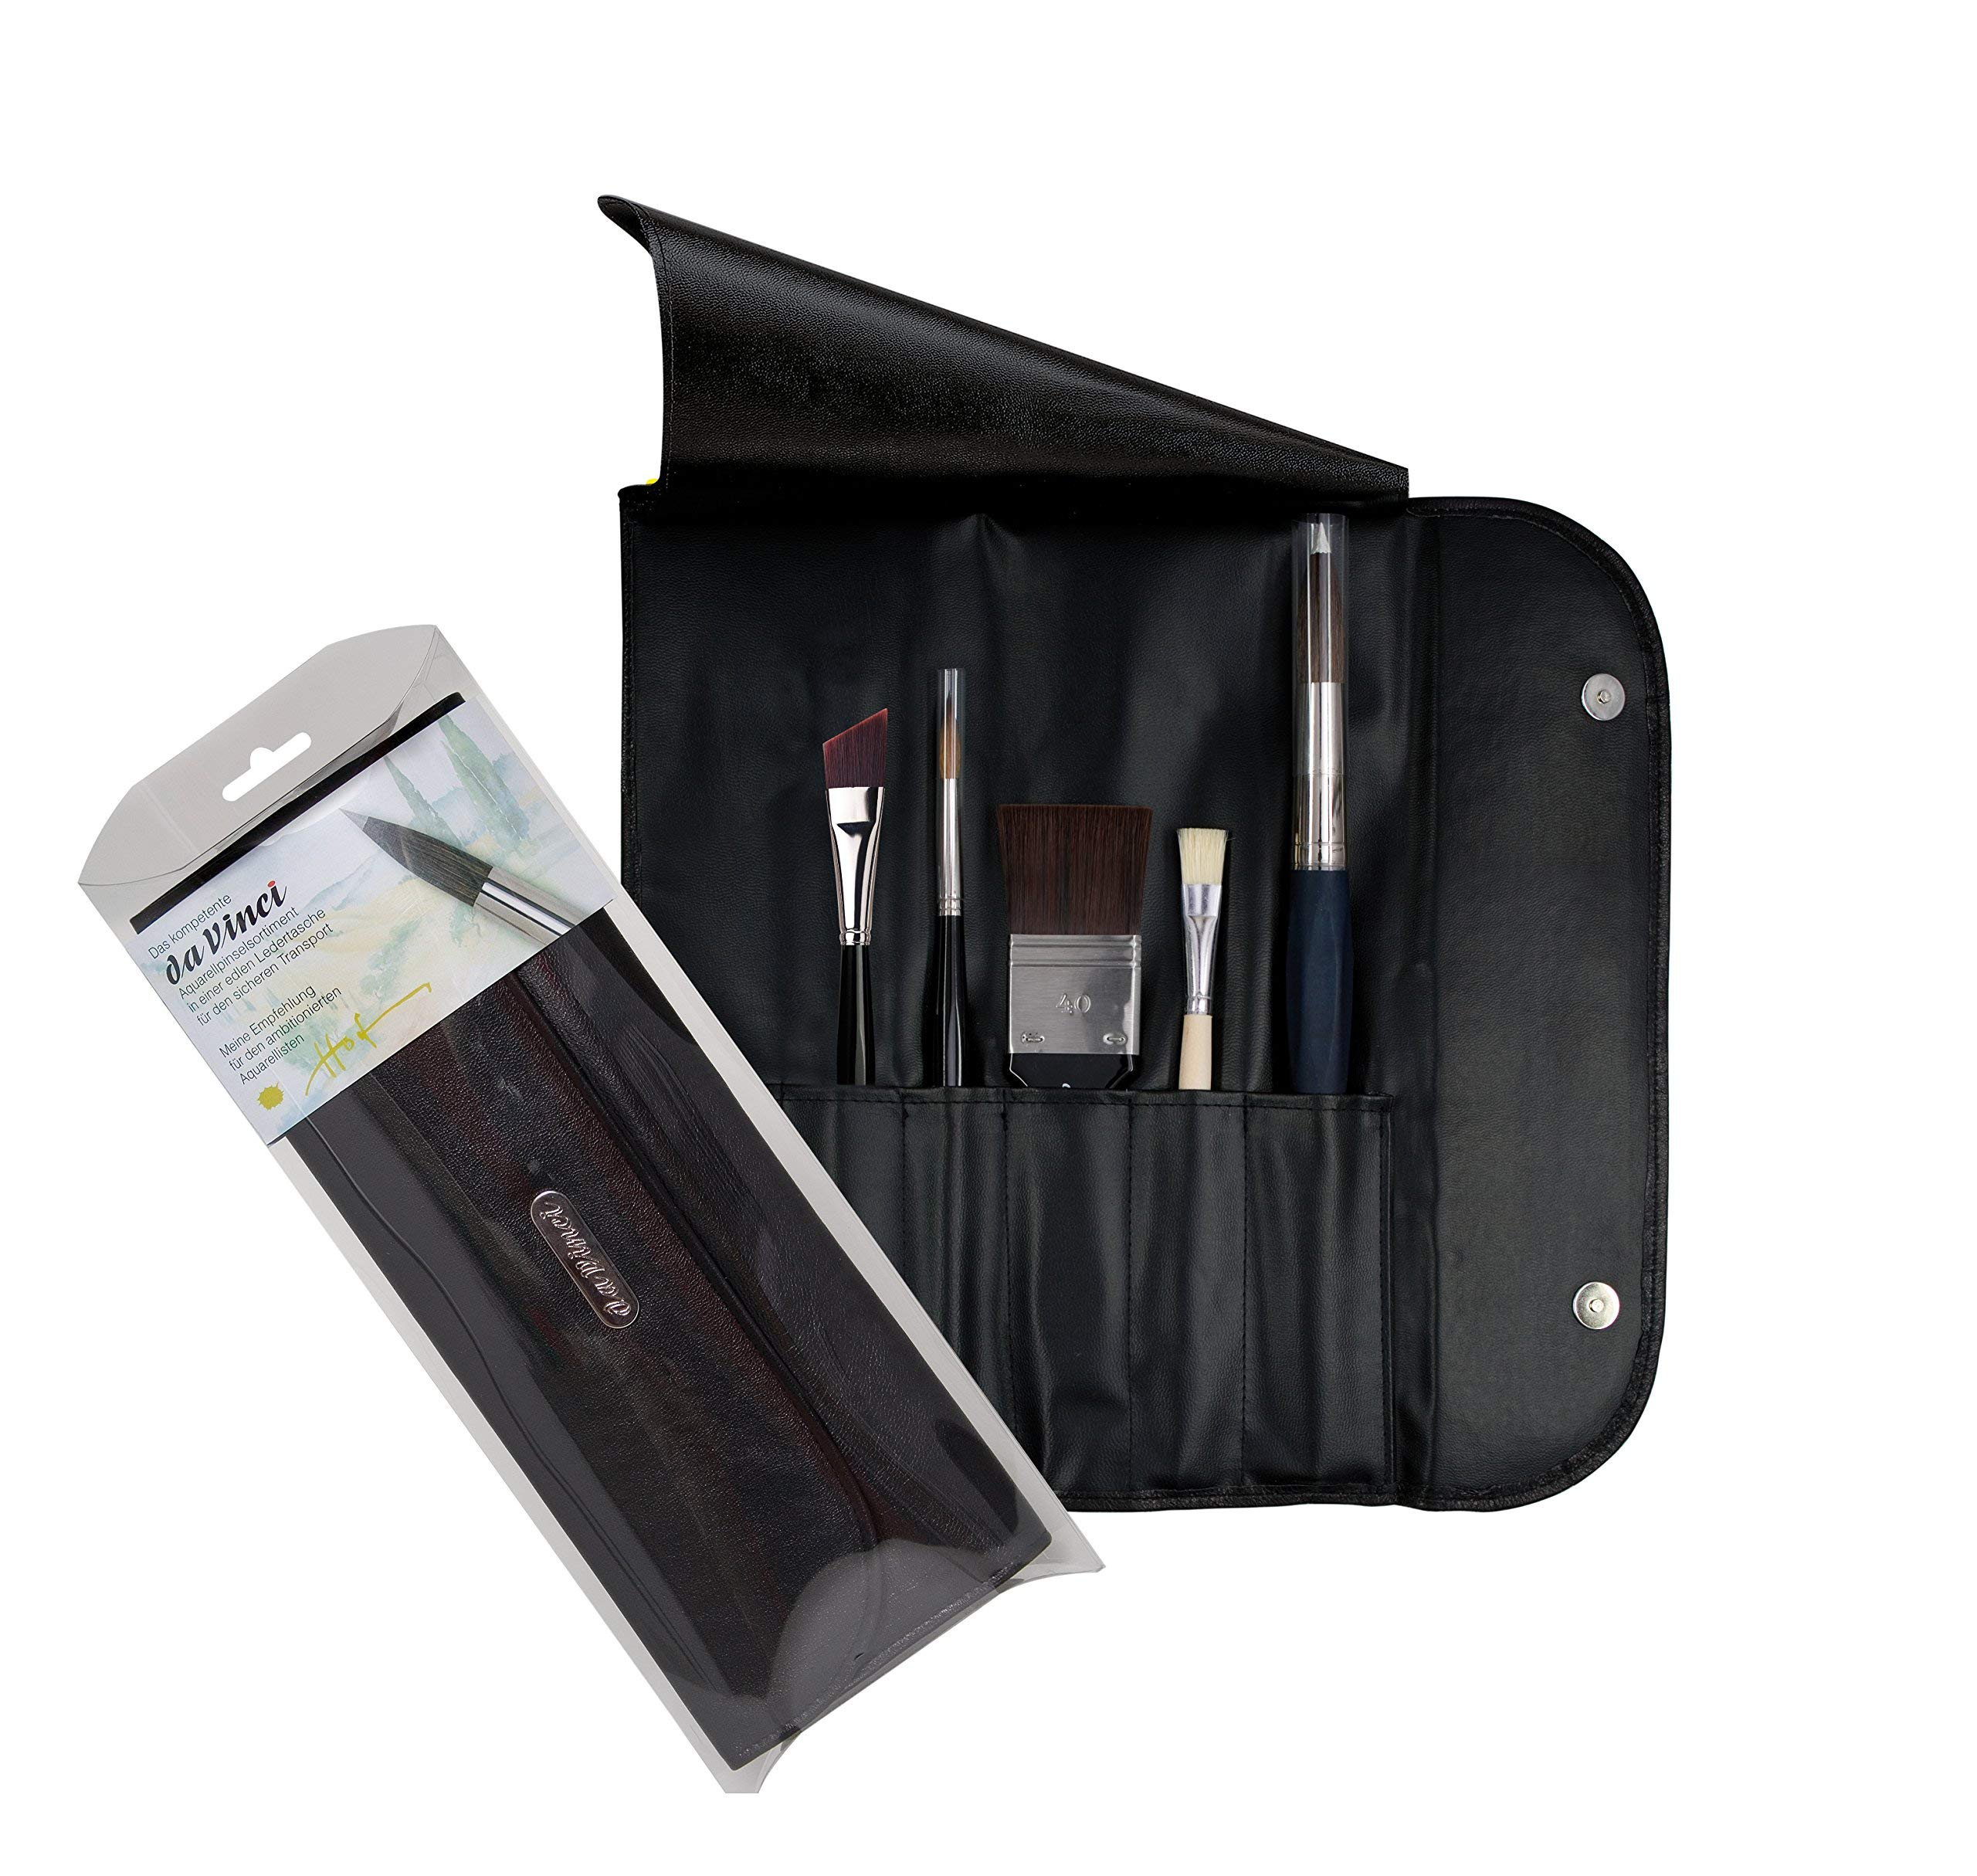 da Vinci Watercolor Series 5271 Ekkehardt Hofmann Paint Brush Set, Natural Hair and Synthetic with Leather Case, Multiple Sizes, 5 Brushes (Series 29, 35, 1383, 5040, 5535) by da Vinci Brushes